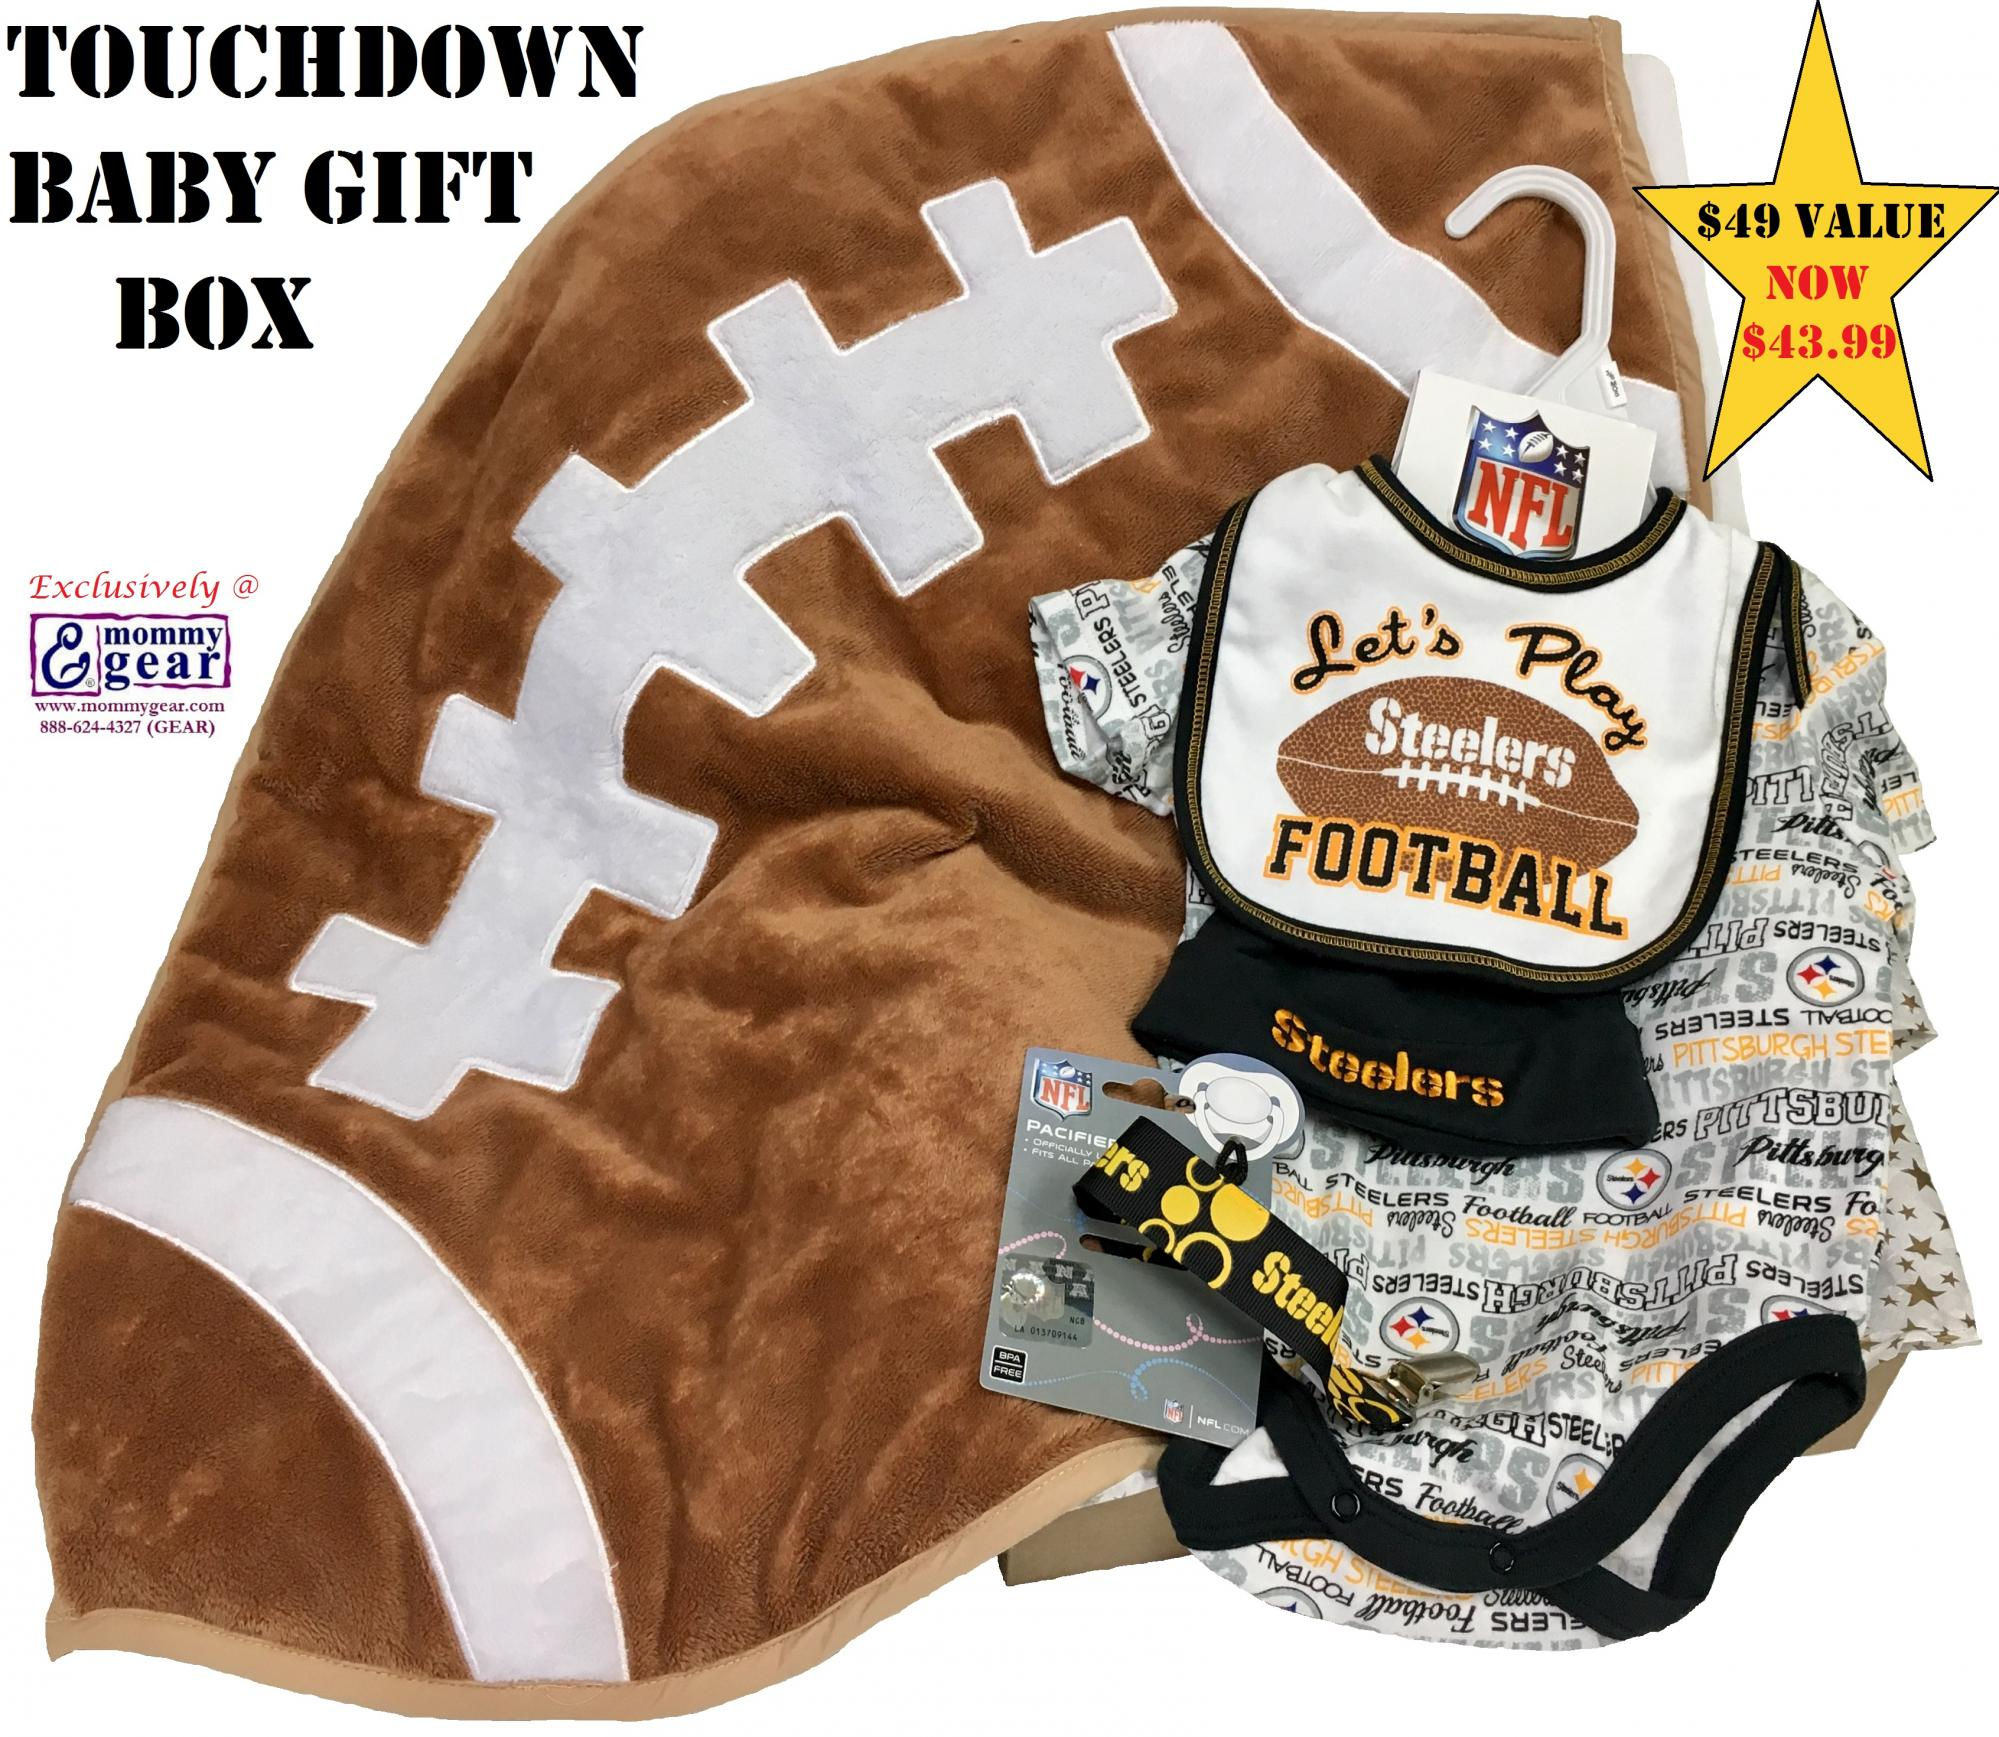 steelers-baby-touchdown-gift-box.jpg